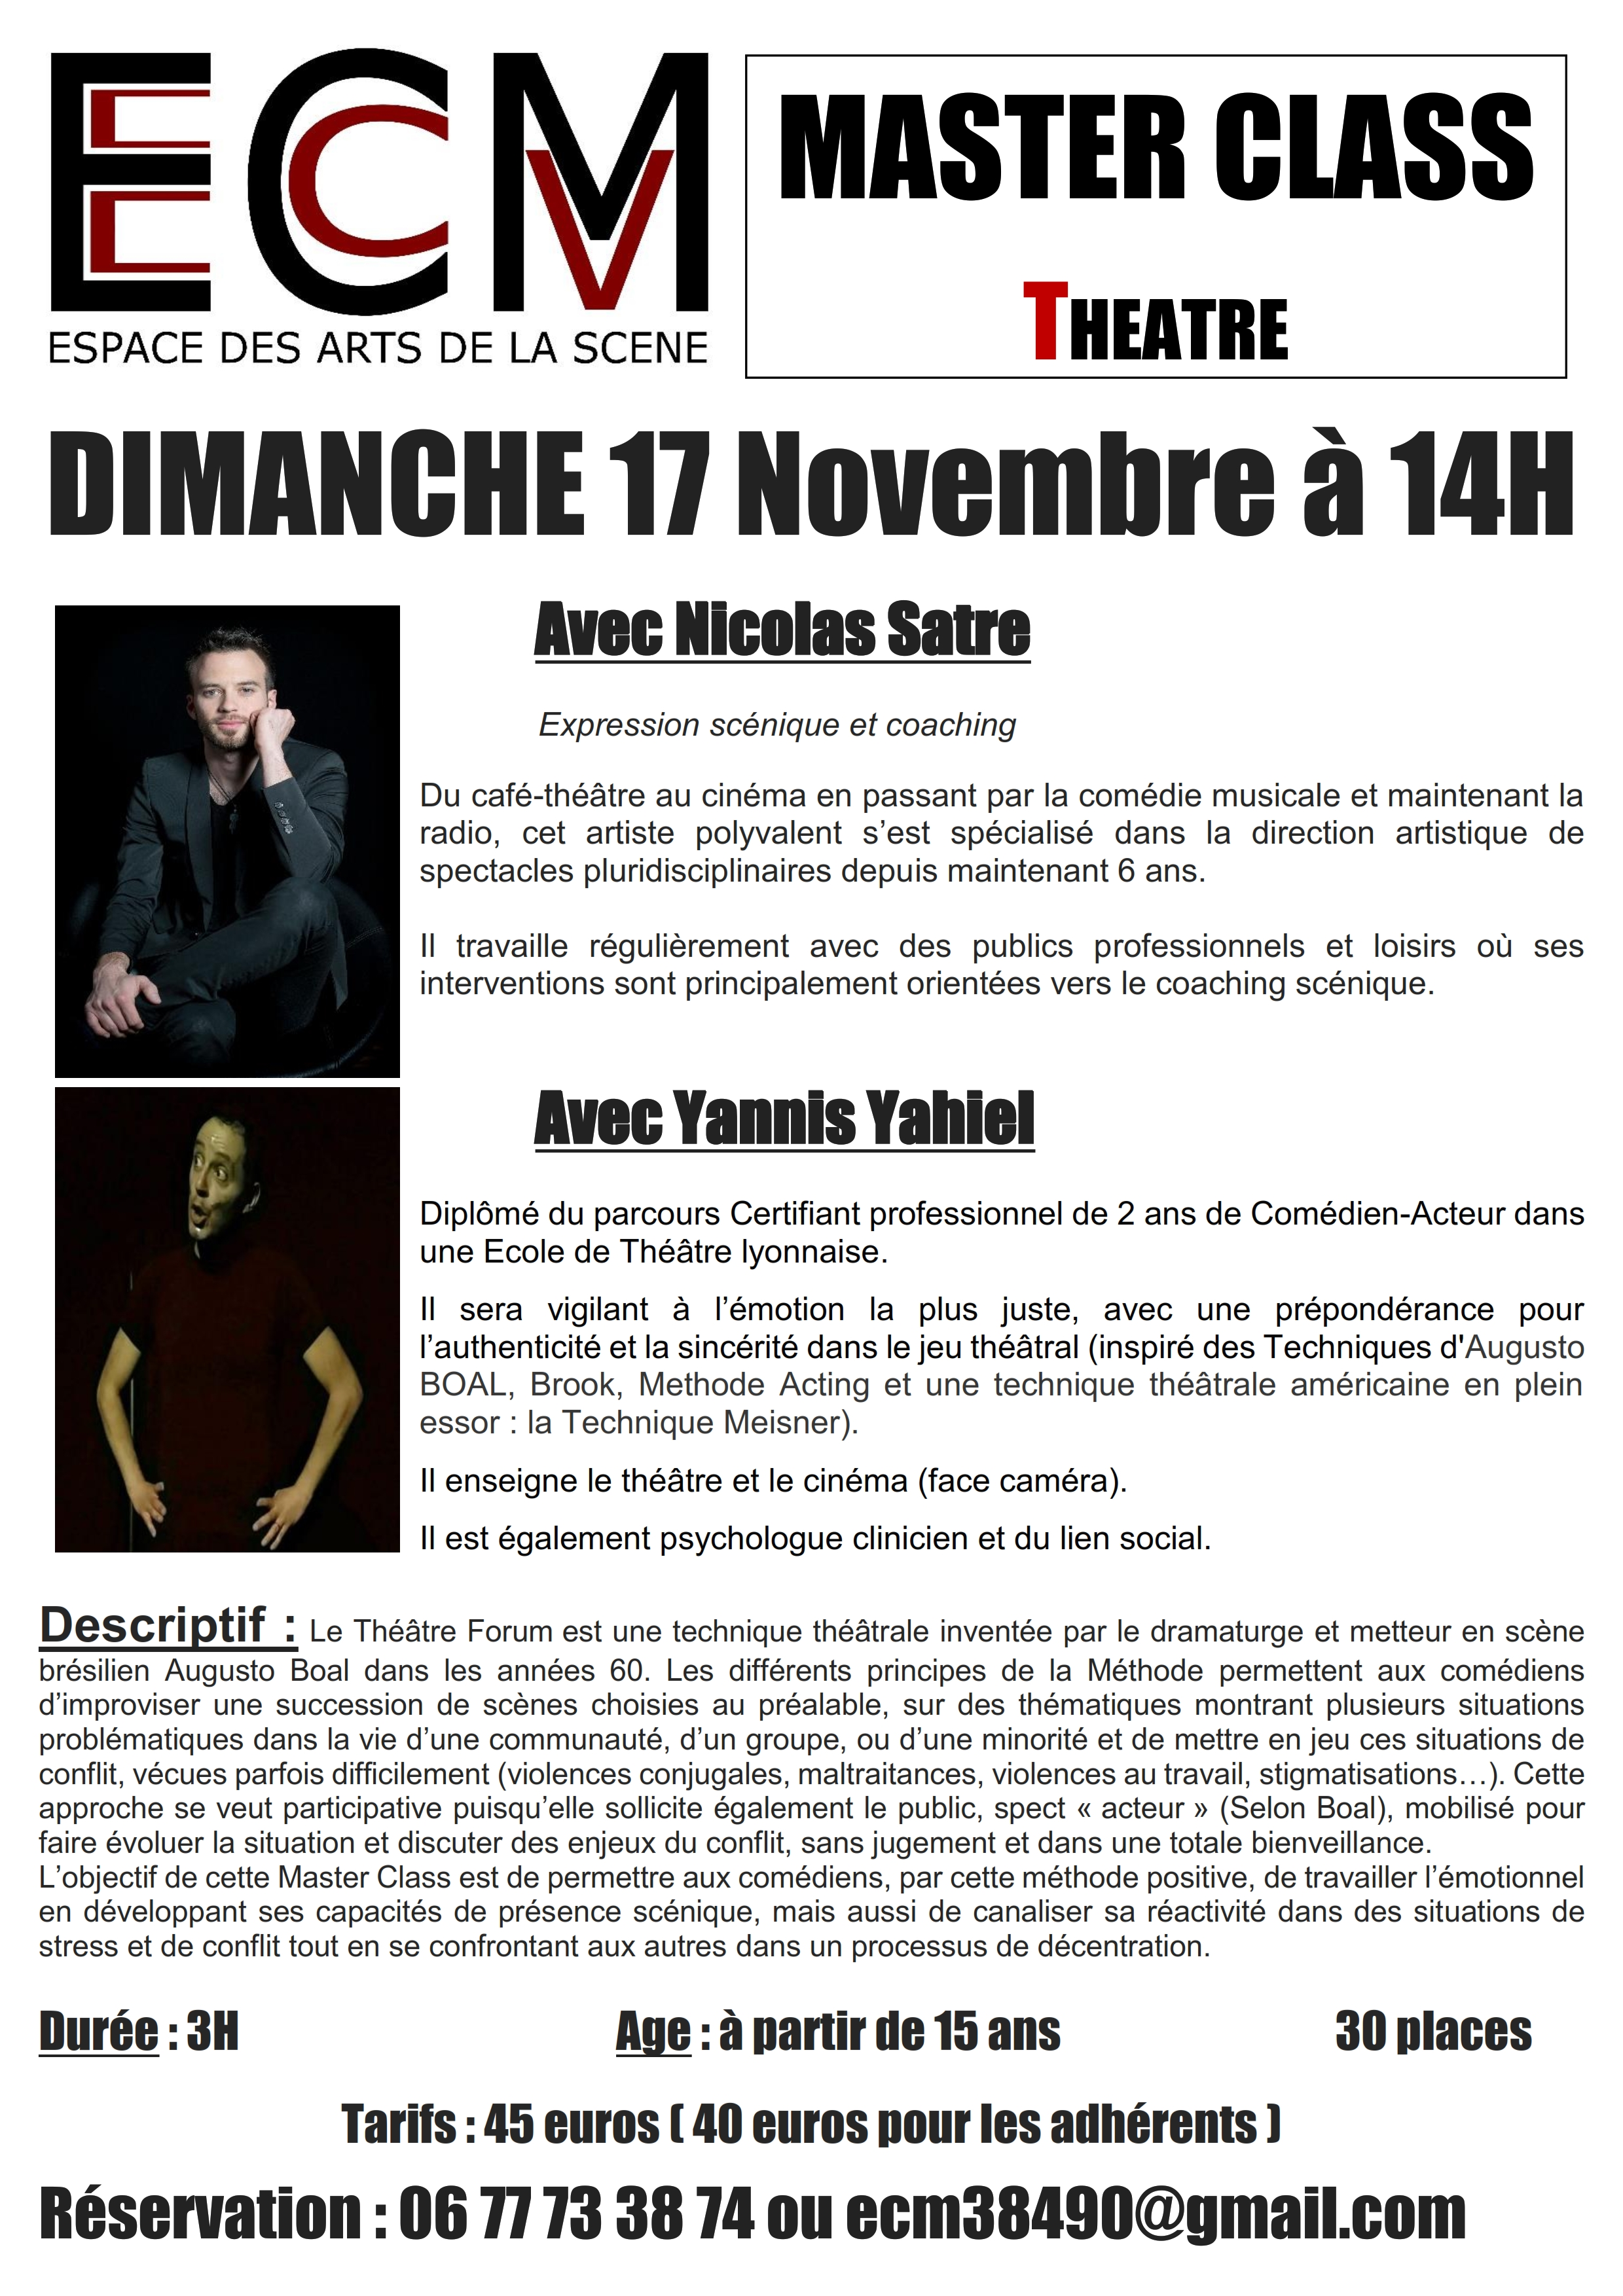 master class stage theatre espace comedie musicale ECM